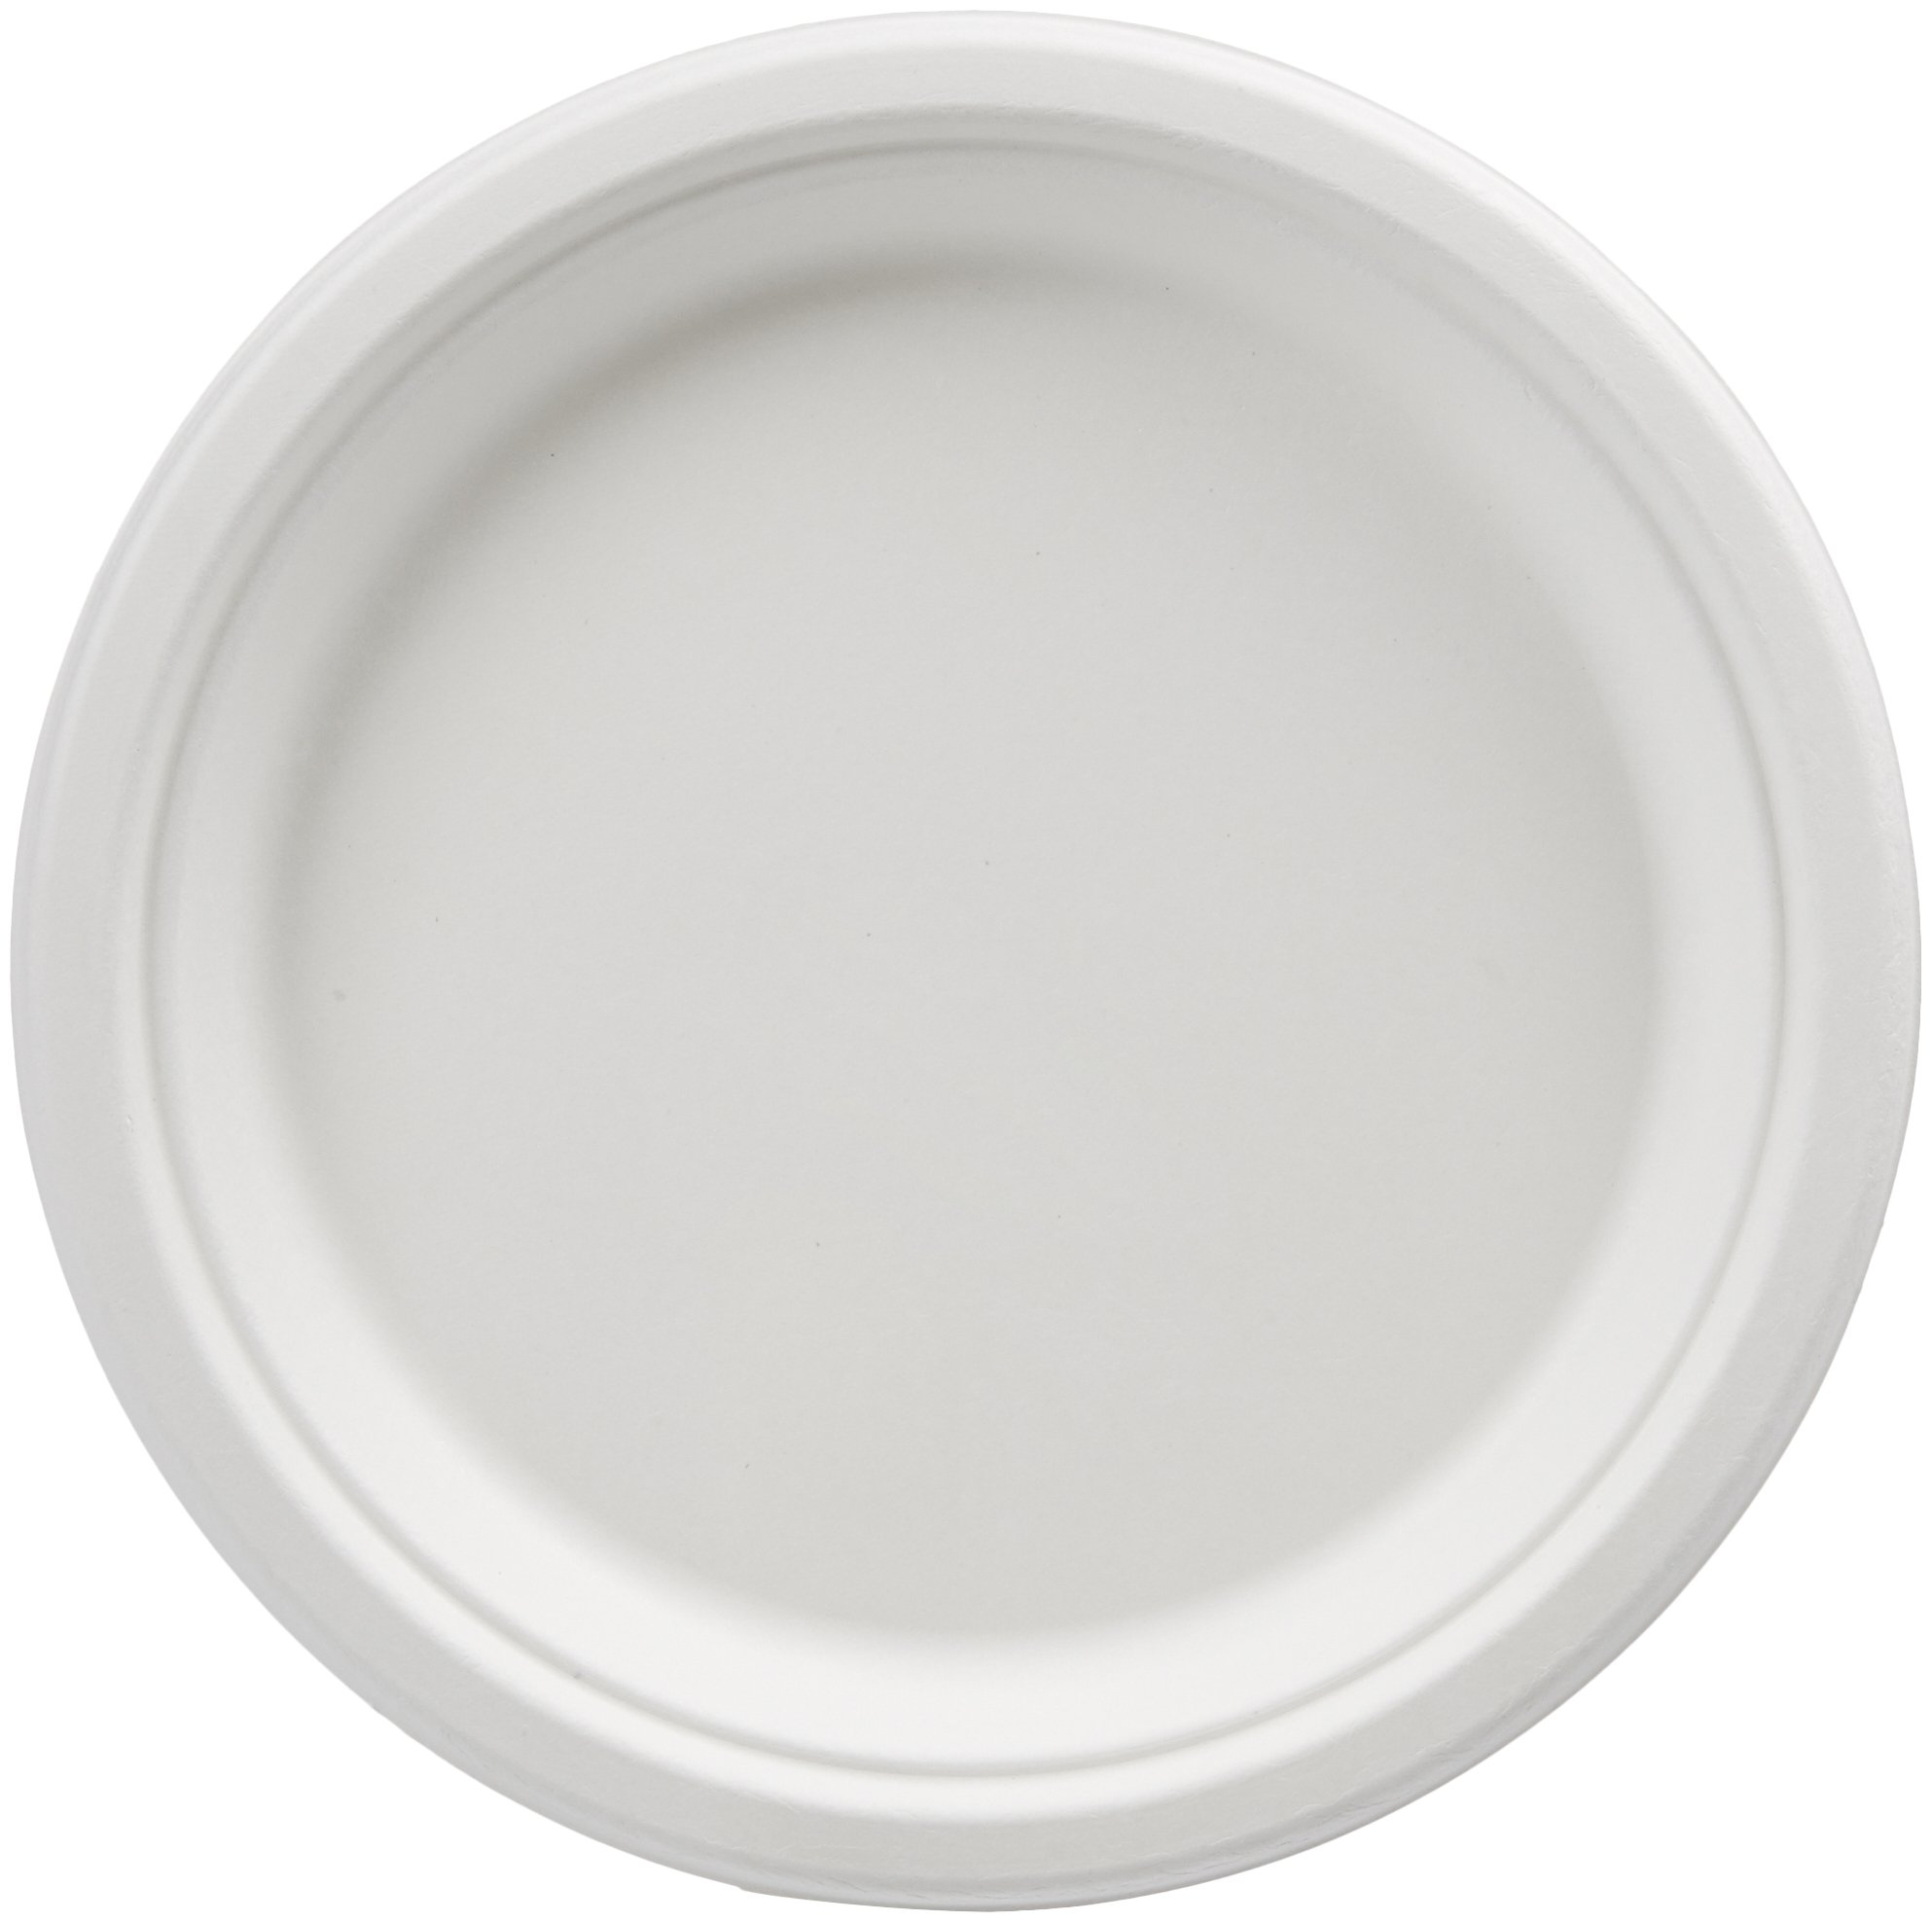 AmazonBasics Compostable Plates, 9-Inch, 500-Count by AmazonBasics